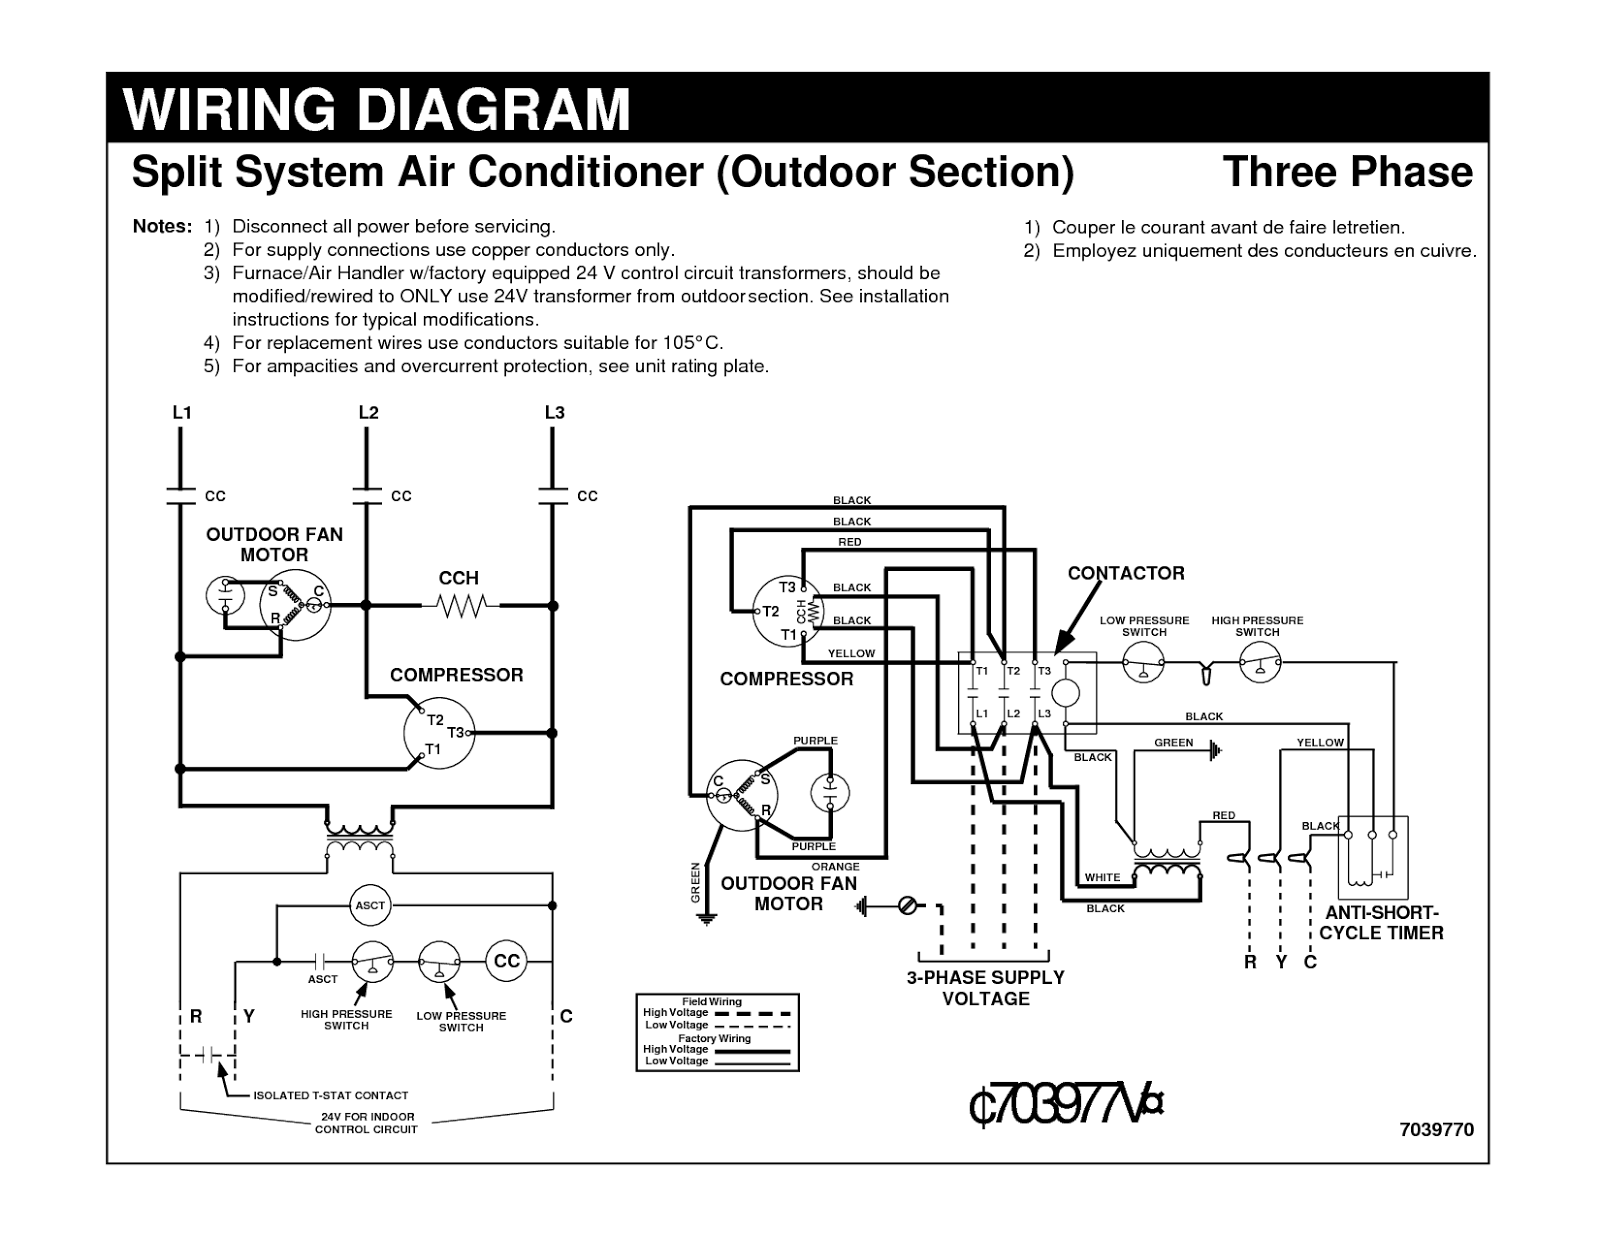 wiring+diagram+in+the+user+manual electrical wiring diagrams for air conditioning systems part one Home Lighting Wiring Diagram at virtualis.co